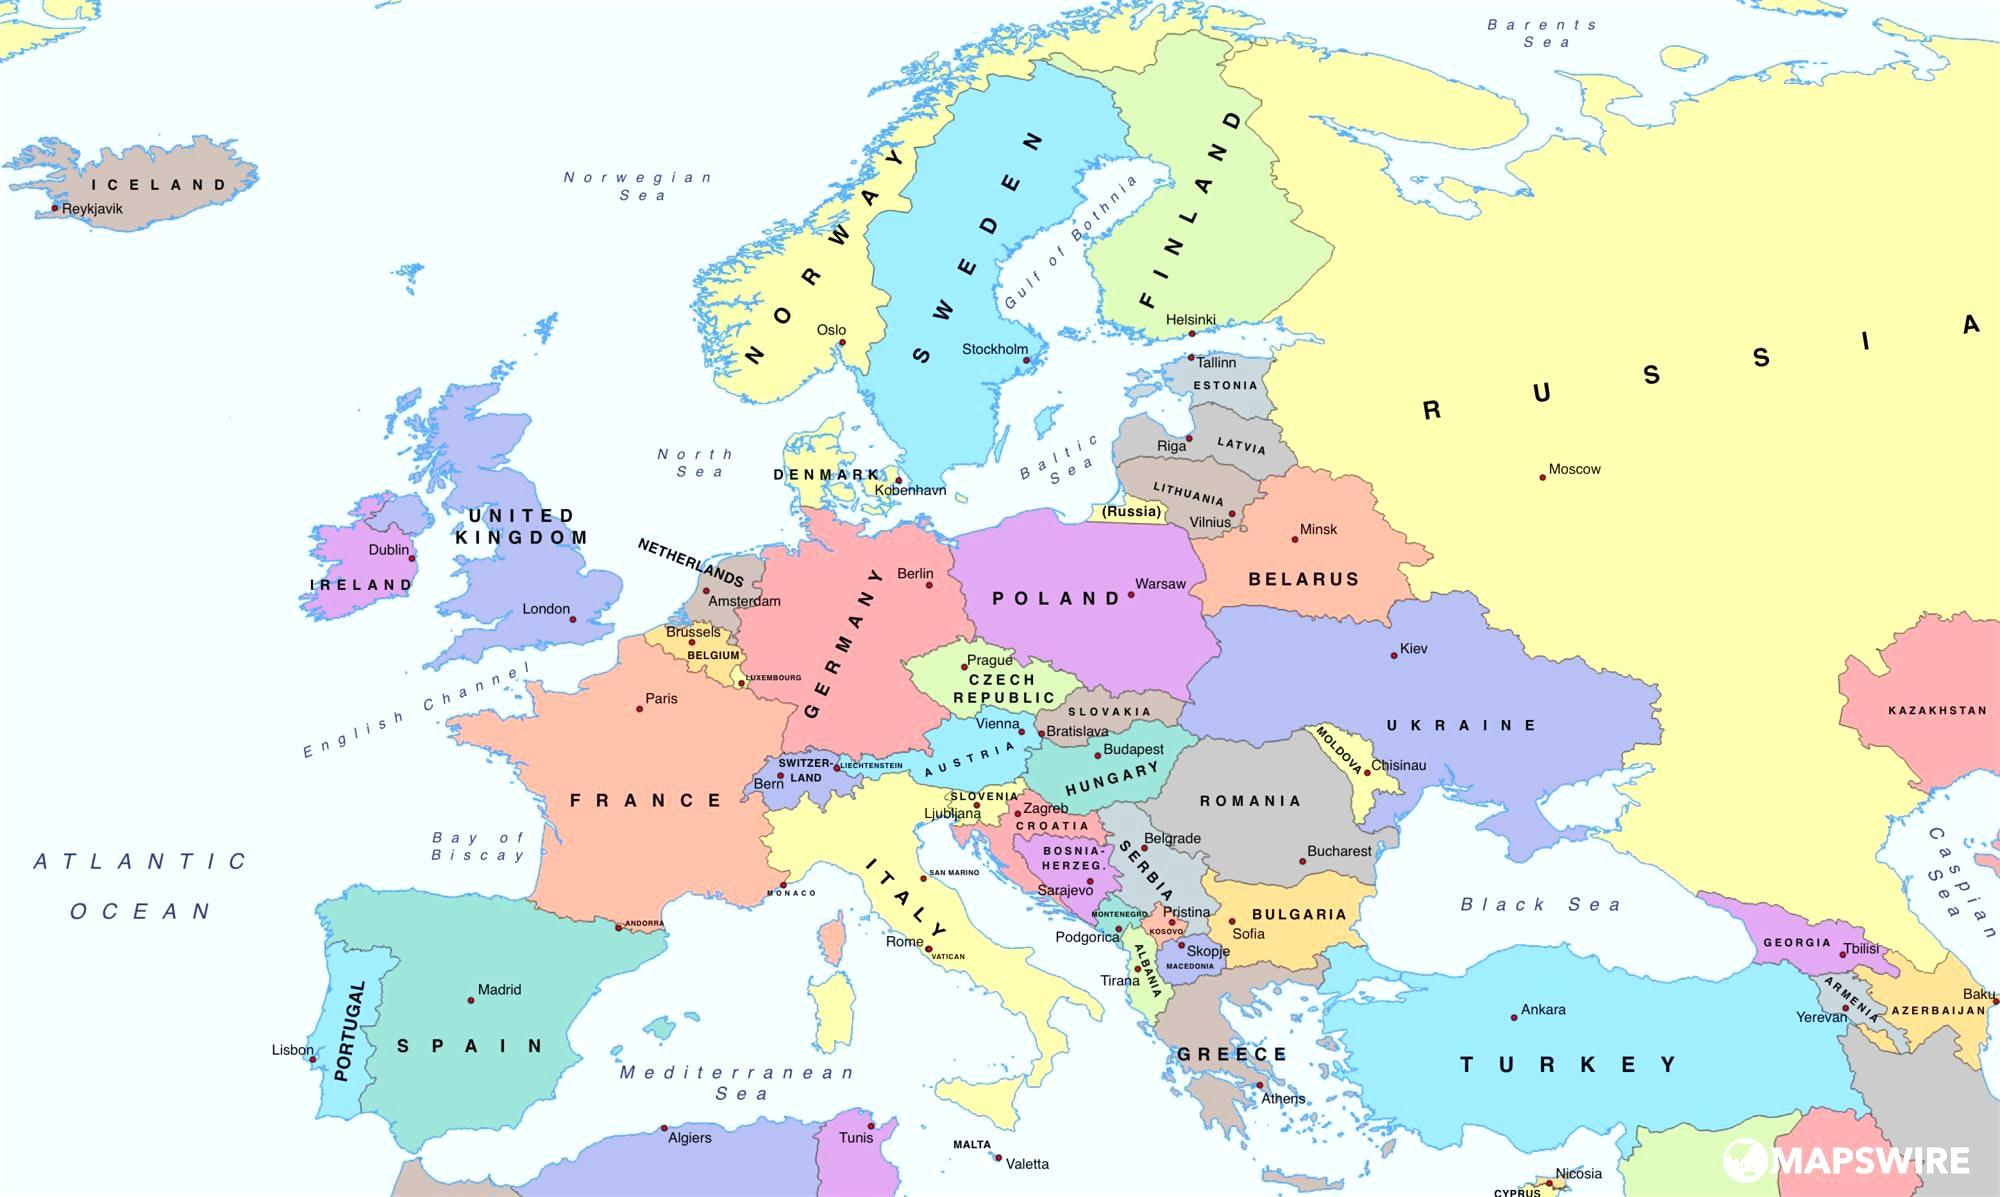 Map Of Europe Showing Austria Austria map europe   Map of europe showing austria (Western Europe  Map Of Europe Showing Austria